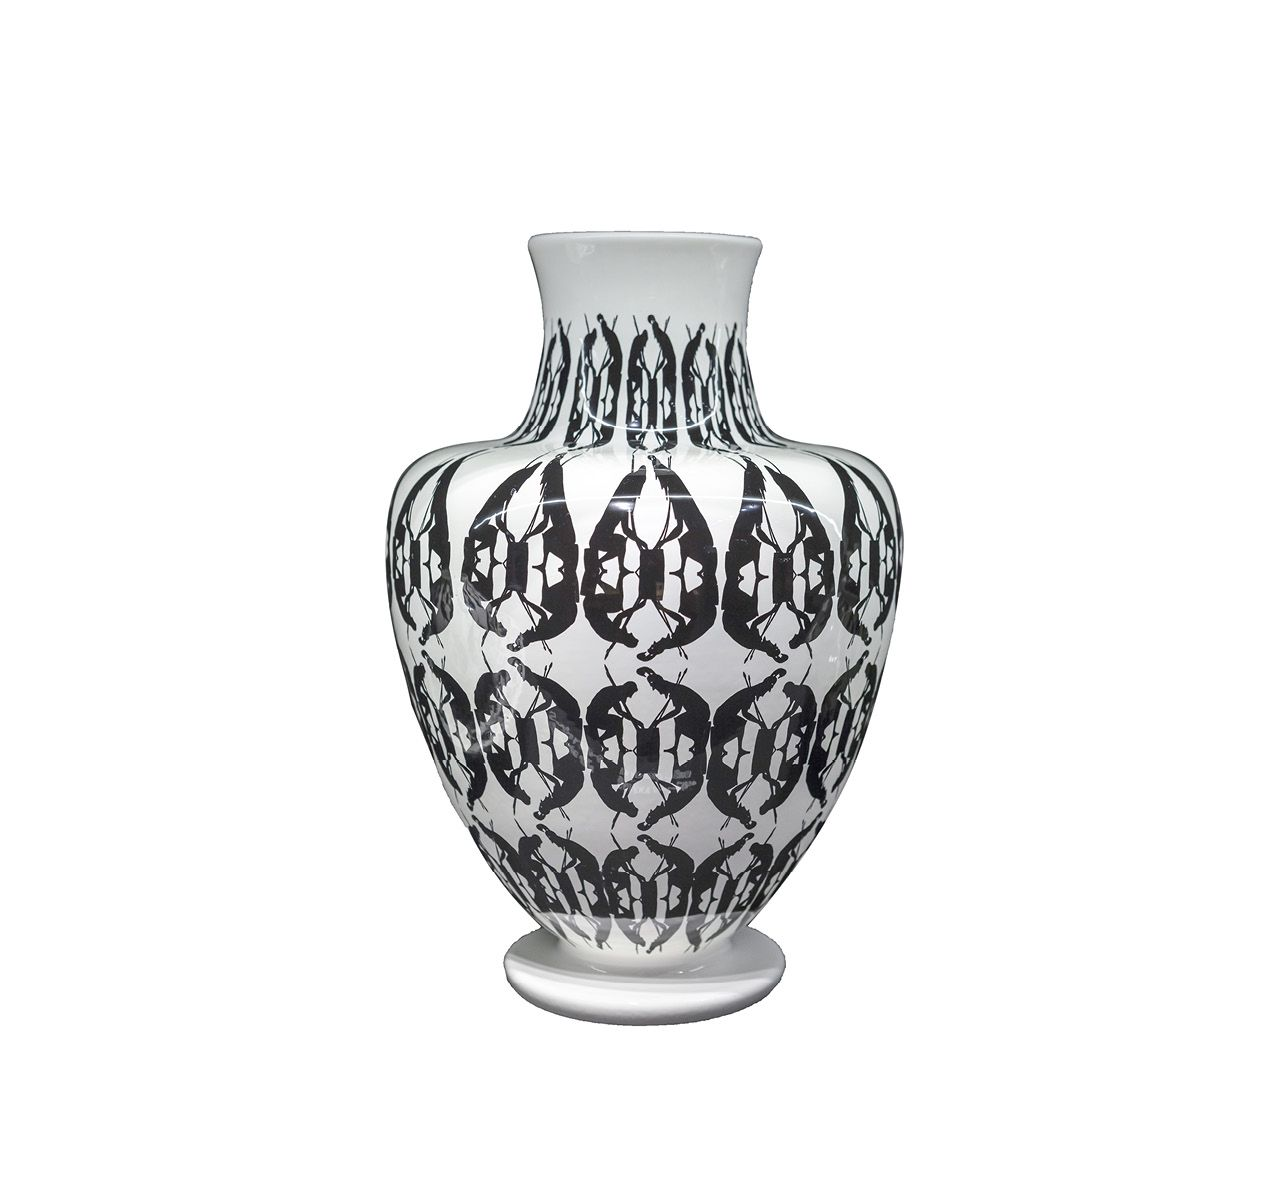 Greeky Large Vase White